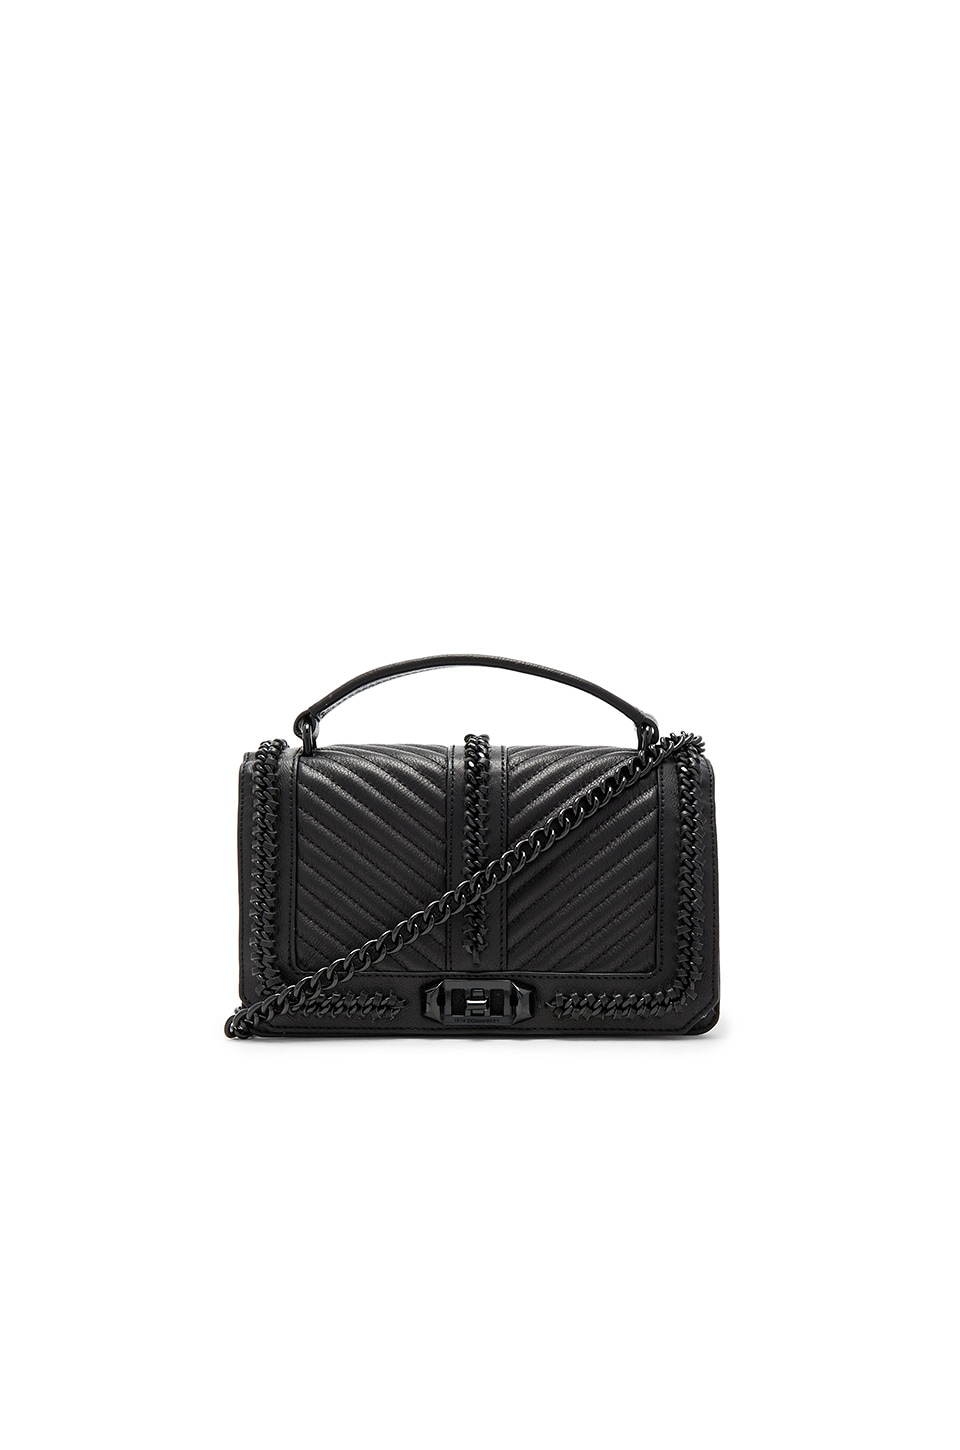 Rebecca Minkoff Love Crossbody Bag in Black